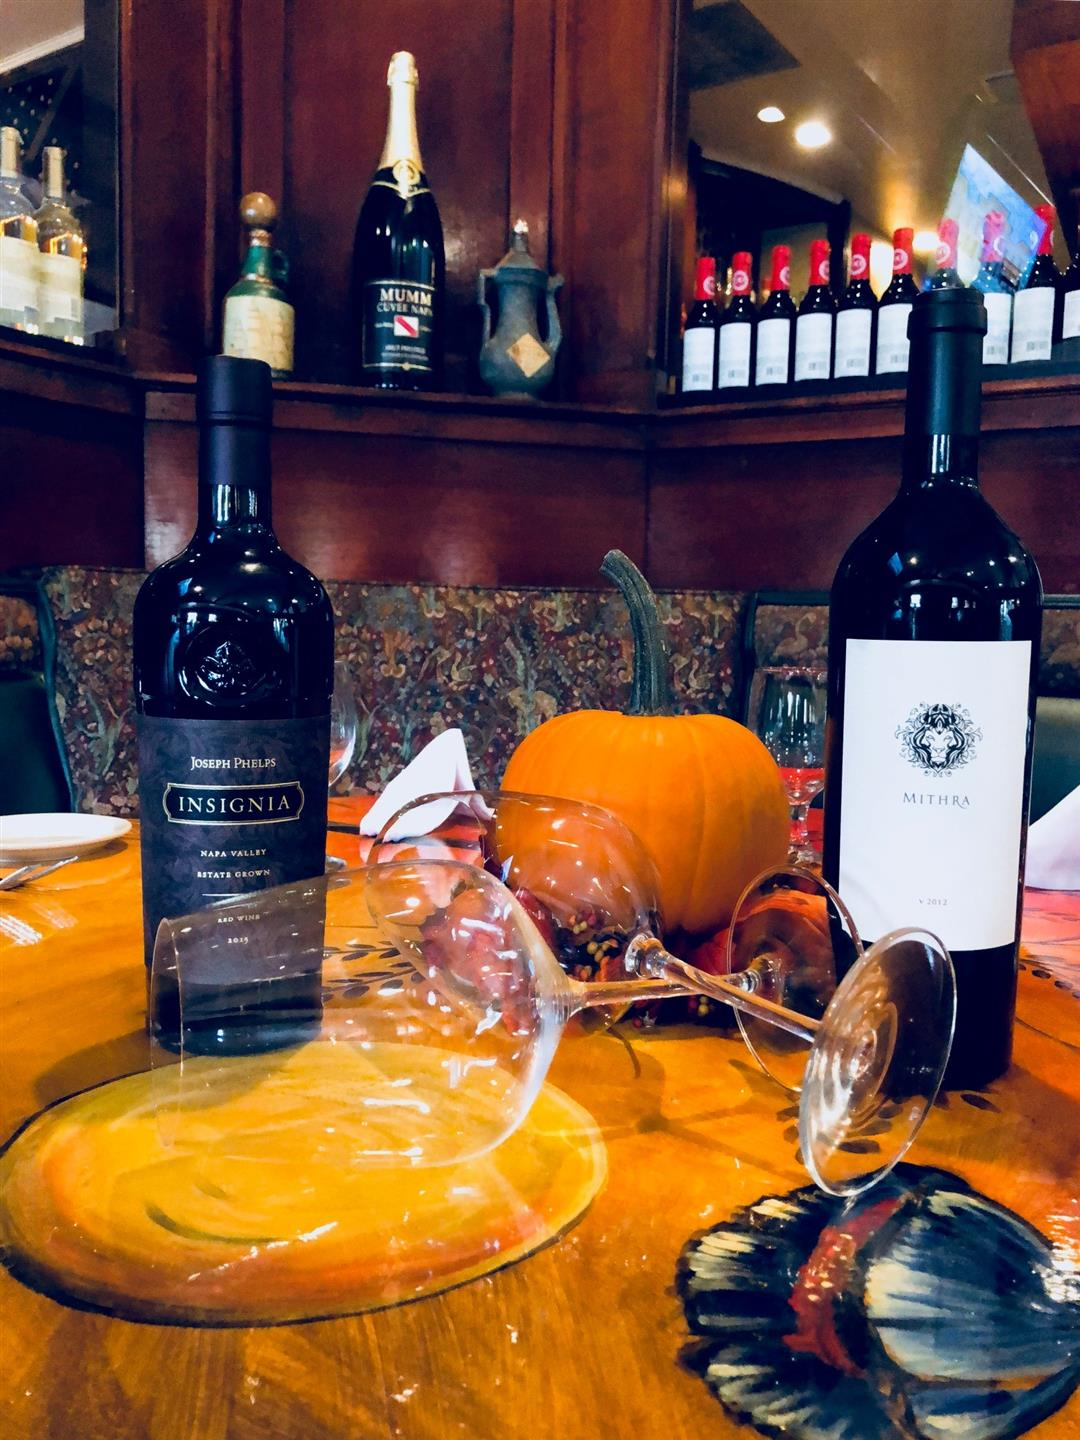 two wine bottles on a table with wine glasses and pumpkin decorations